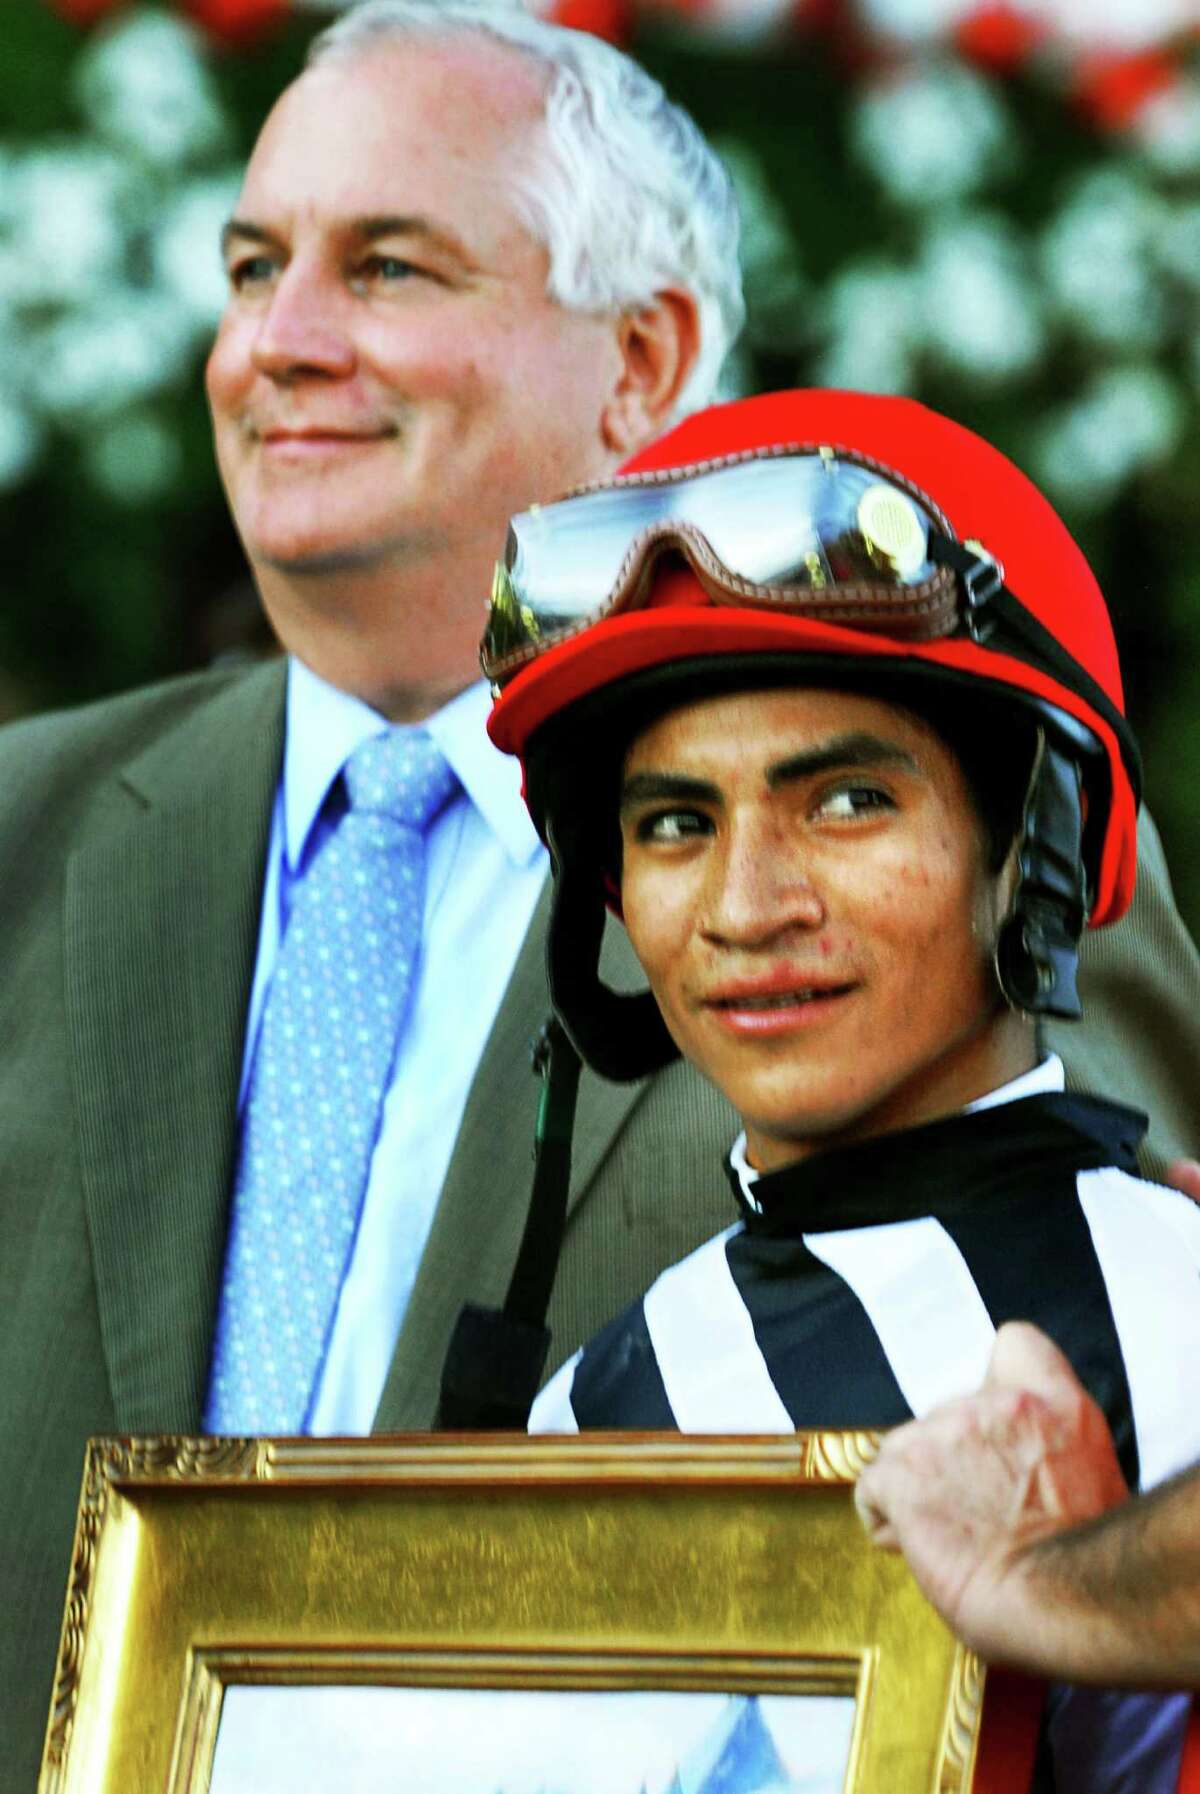 Times Union staff photo by John Carl D'Annibale: NYRA's Charlie Hayward, left, and Jockey Alan Garcia during photo op in the winners circle after Garcia's winning of The Hopeful at Saratoga Race Course Monday afternoon September 1, 2008. SARATOGA RACE TRACK